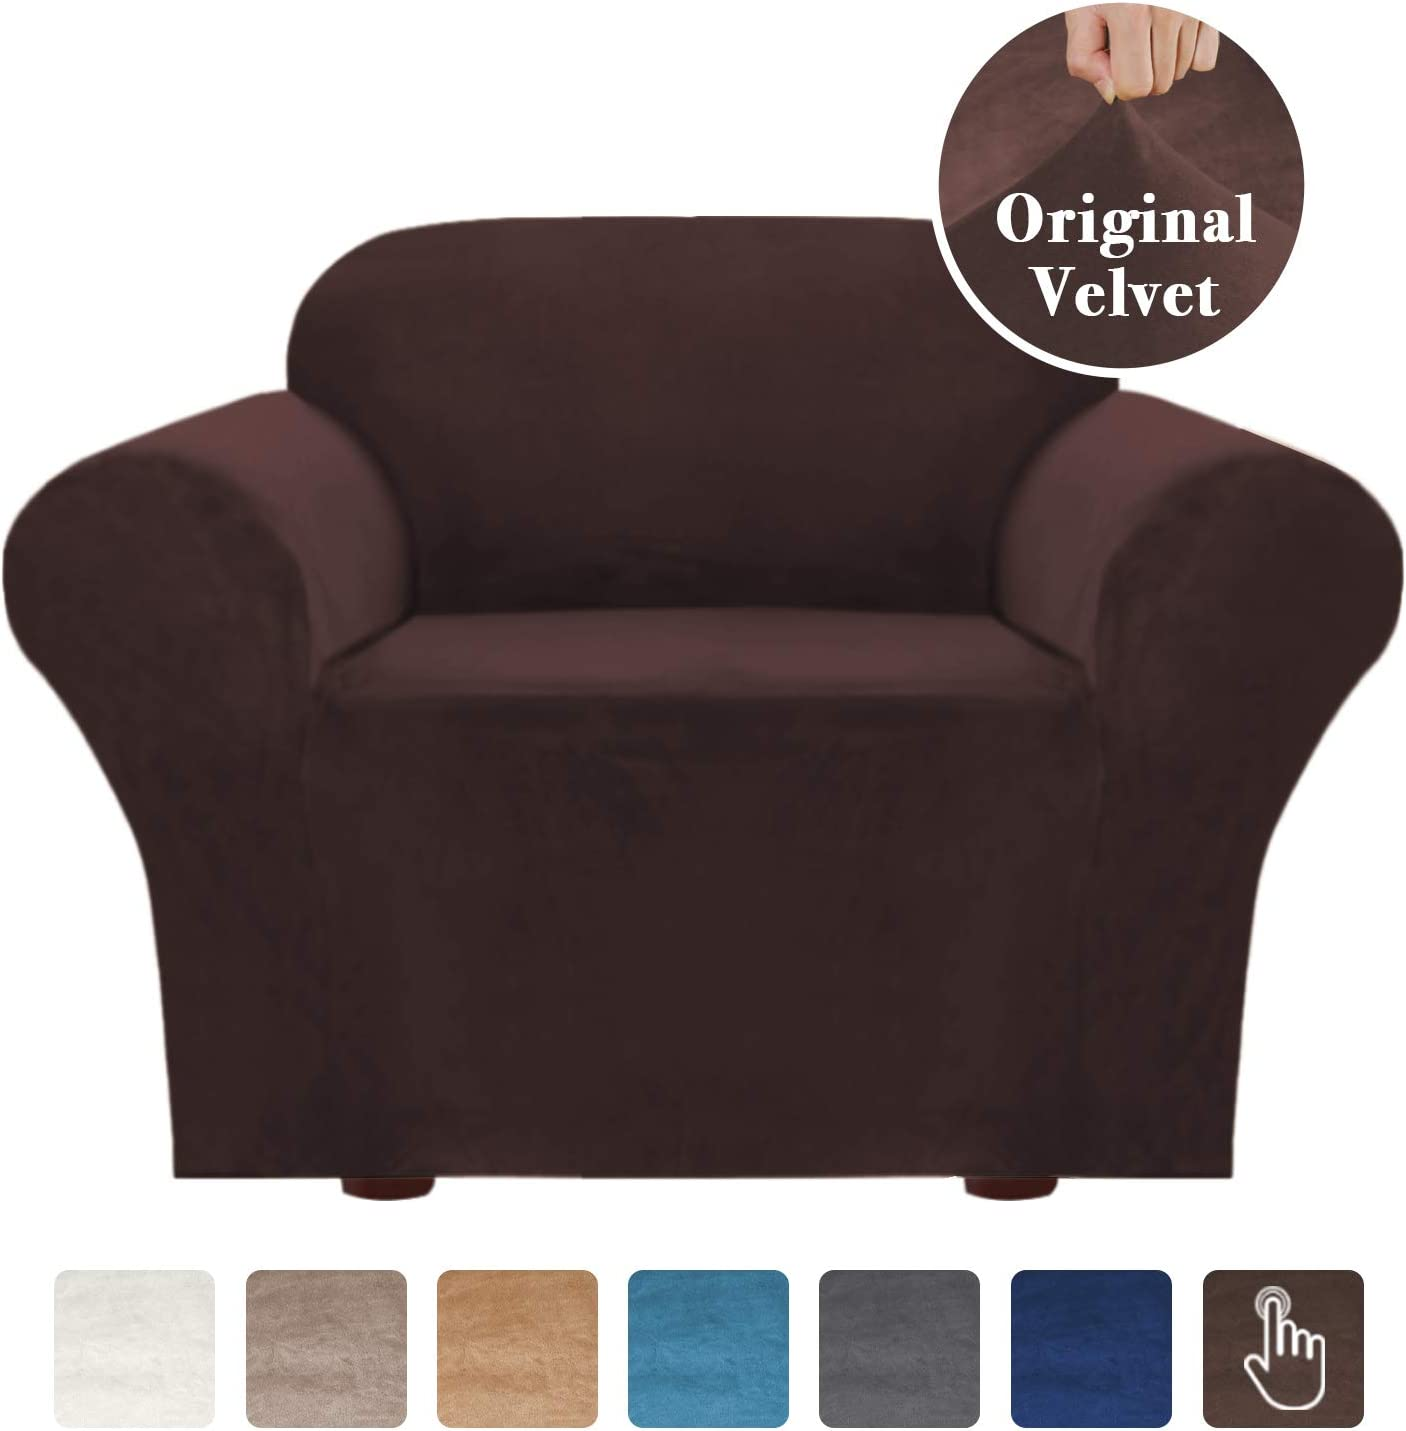 """Velvet Stretch Sofa Cover 1 Cushion Couch Covers Armchair Covers for Living Room Armchair Slipcovers for Chairs, Feature Soft Thick and Non Slip Foam Articles (Chair 32""""-48"""", Brown)"""